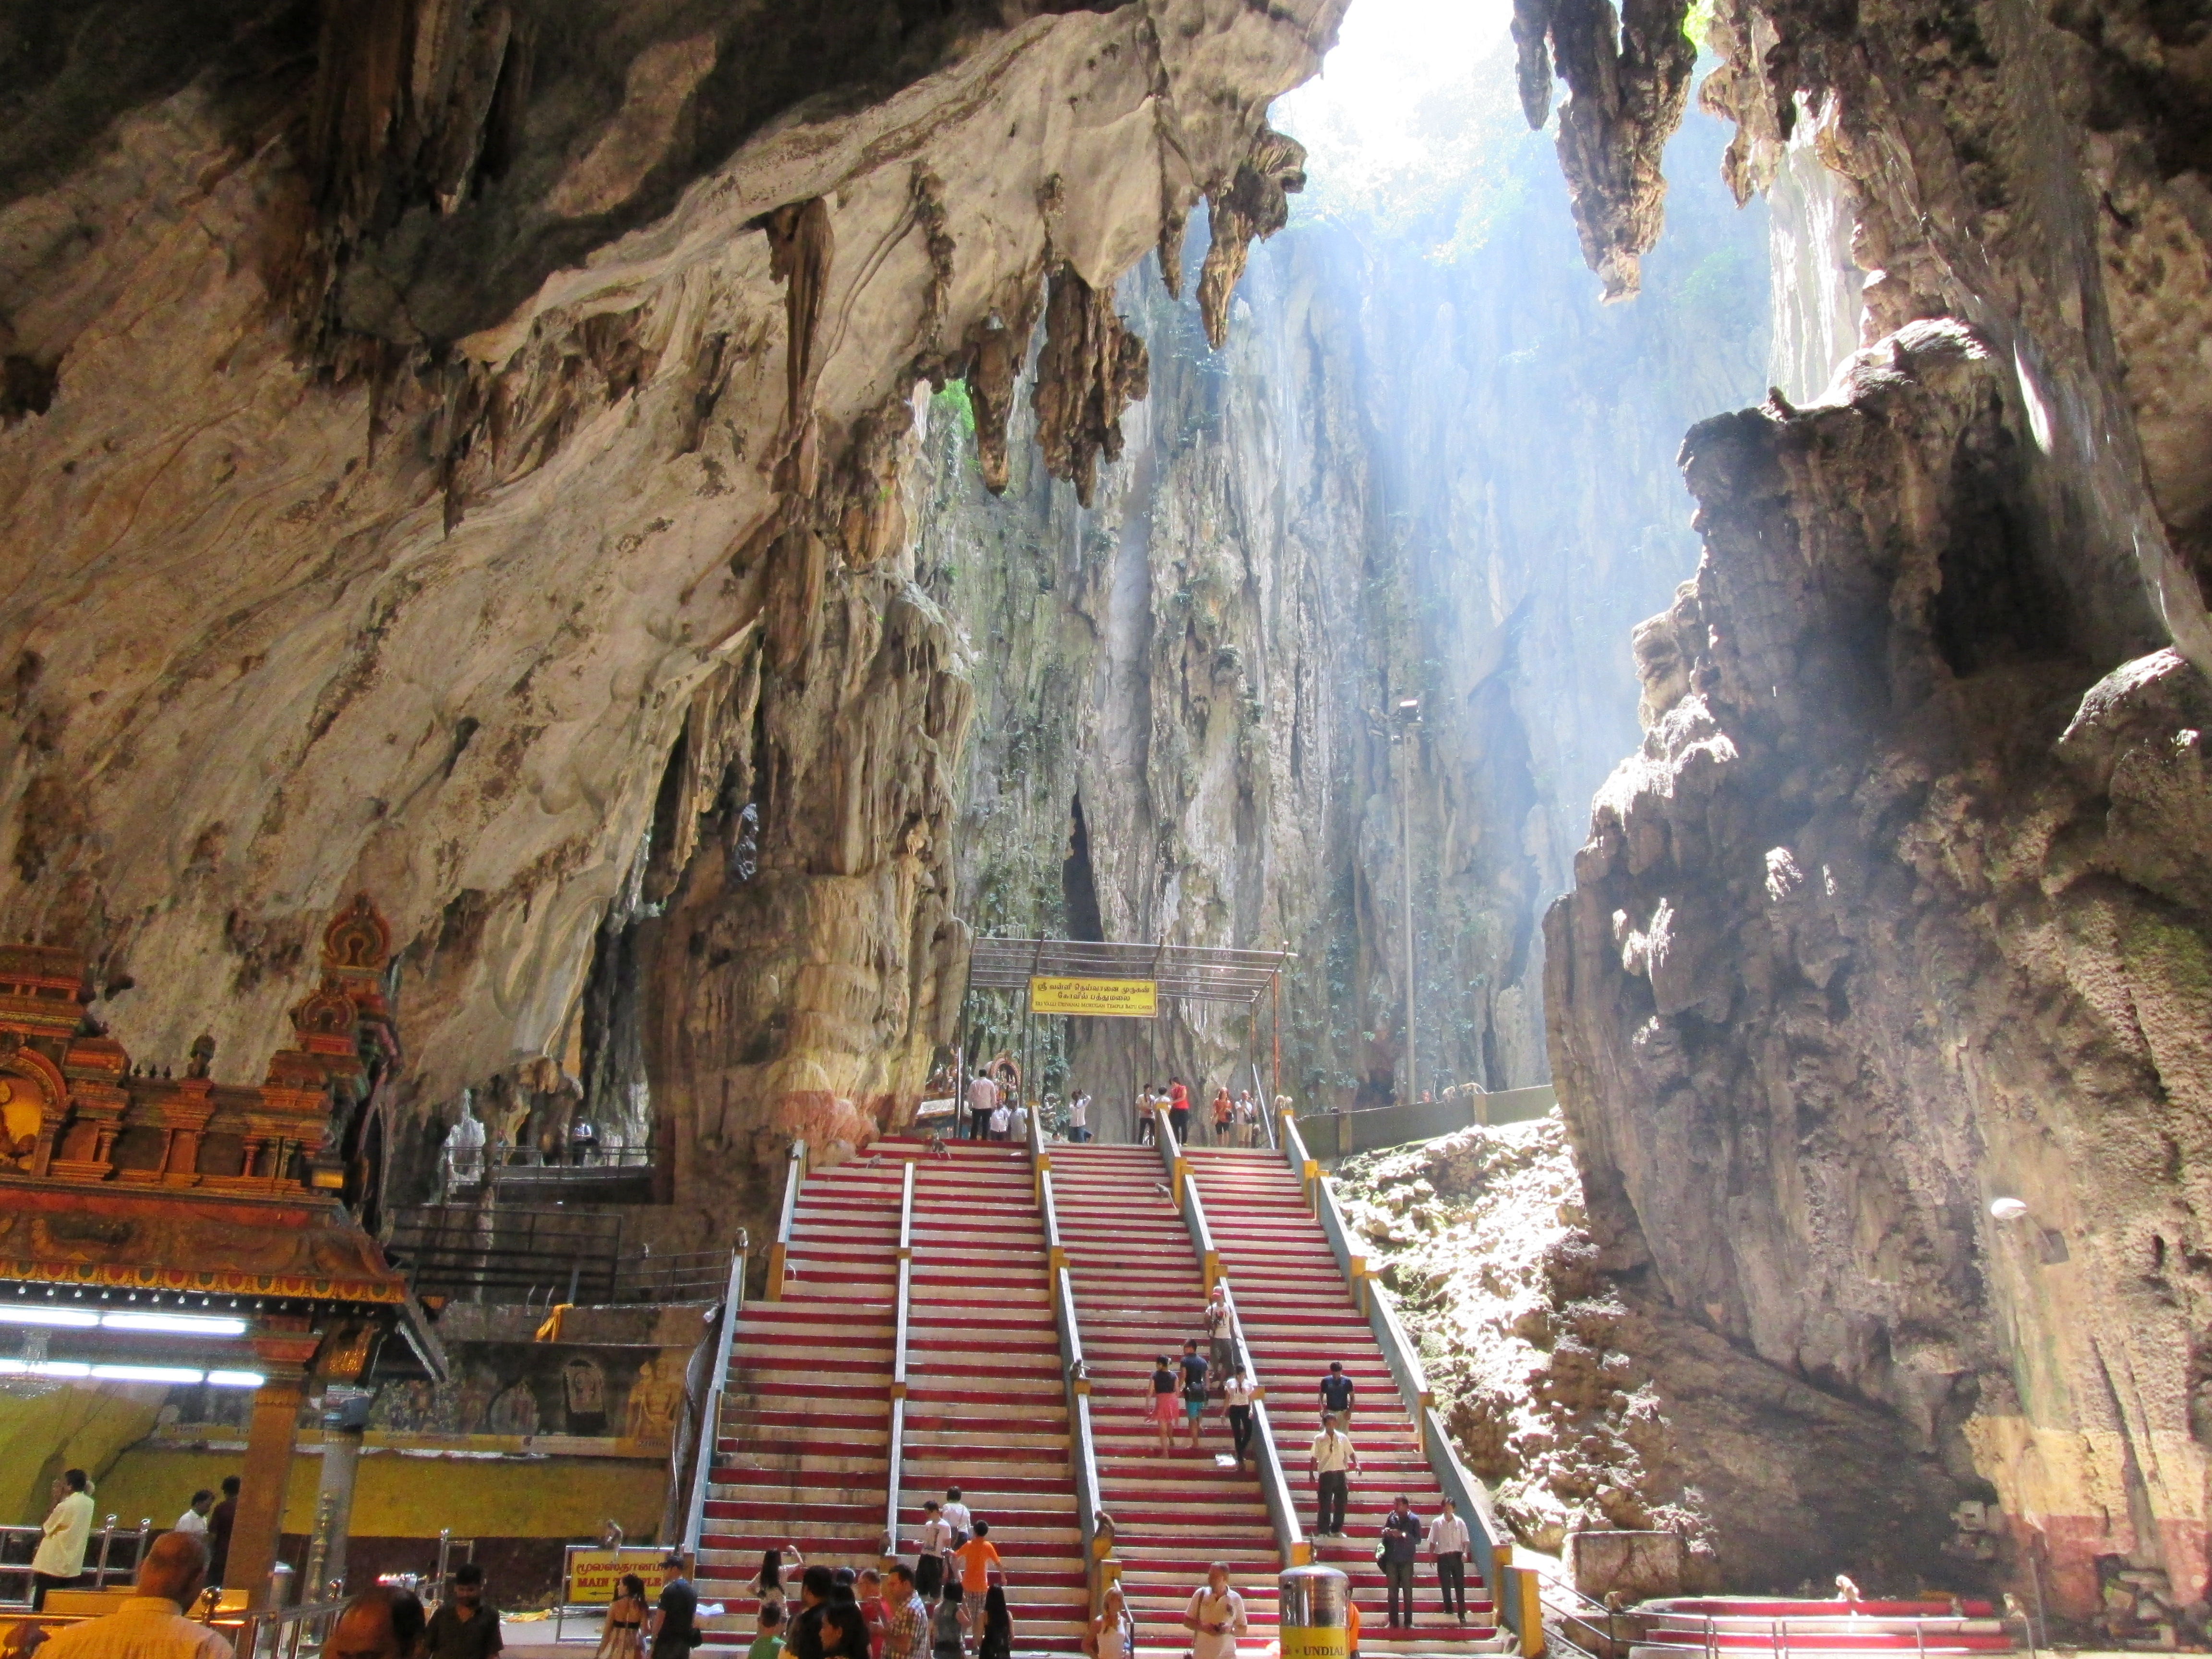 Batu caves is amazing on its own it is believed that the limestone